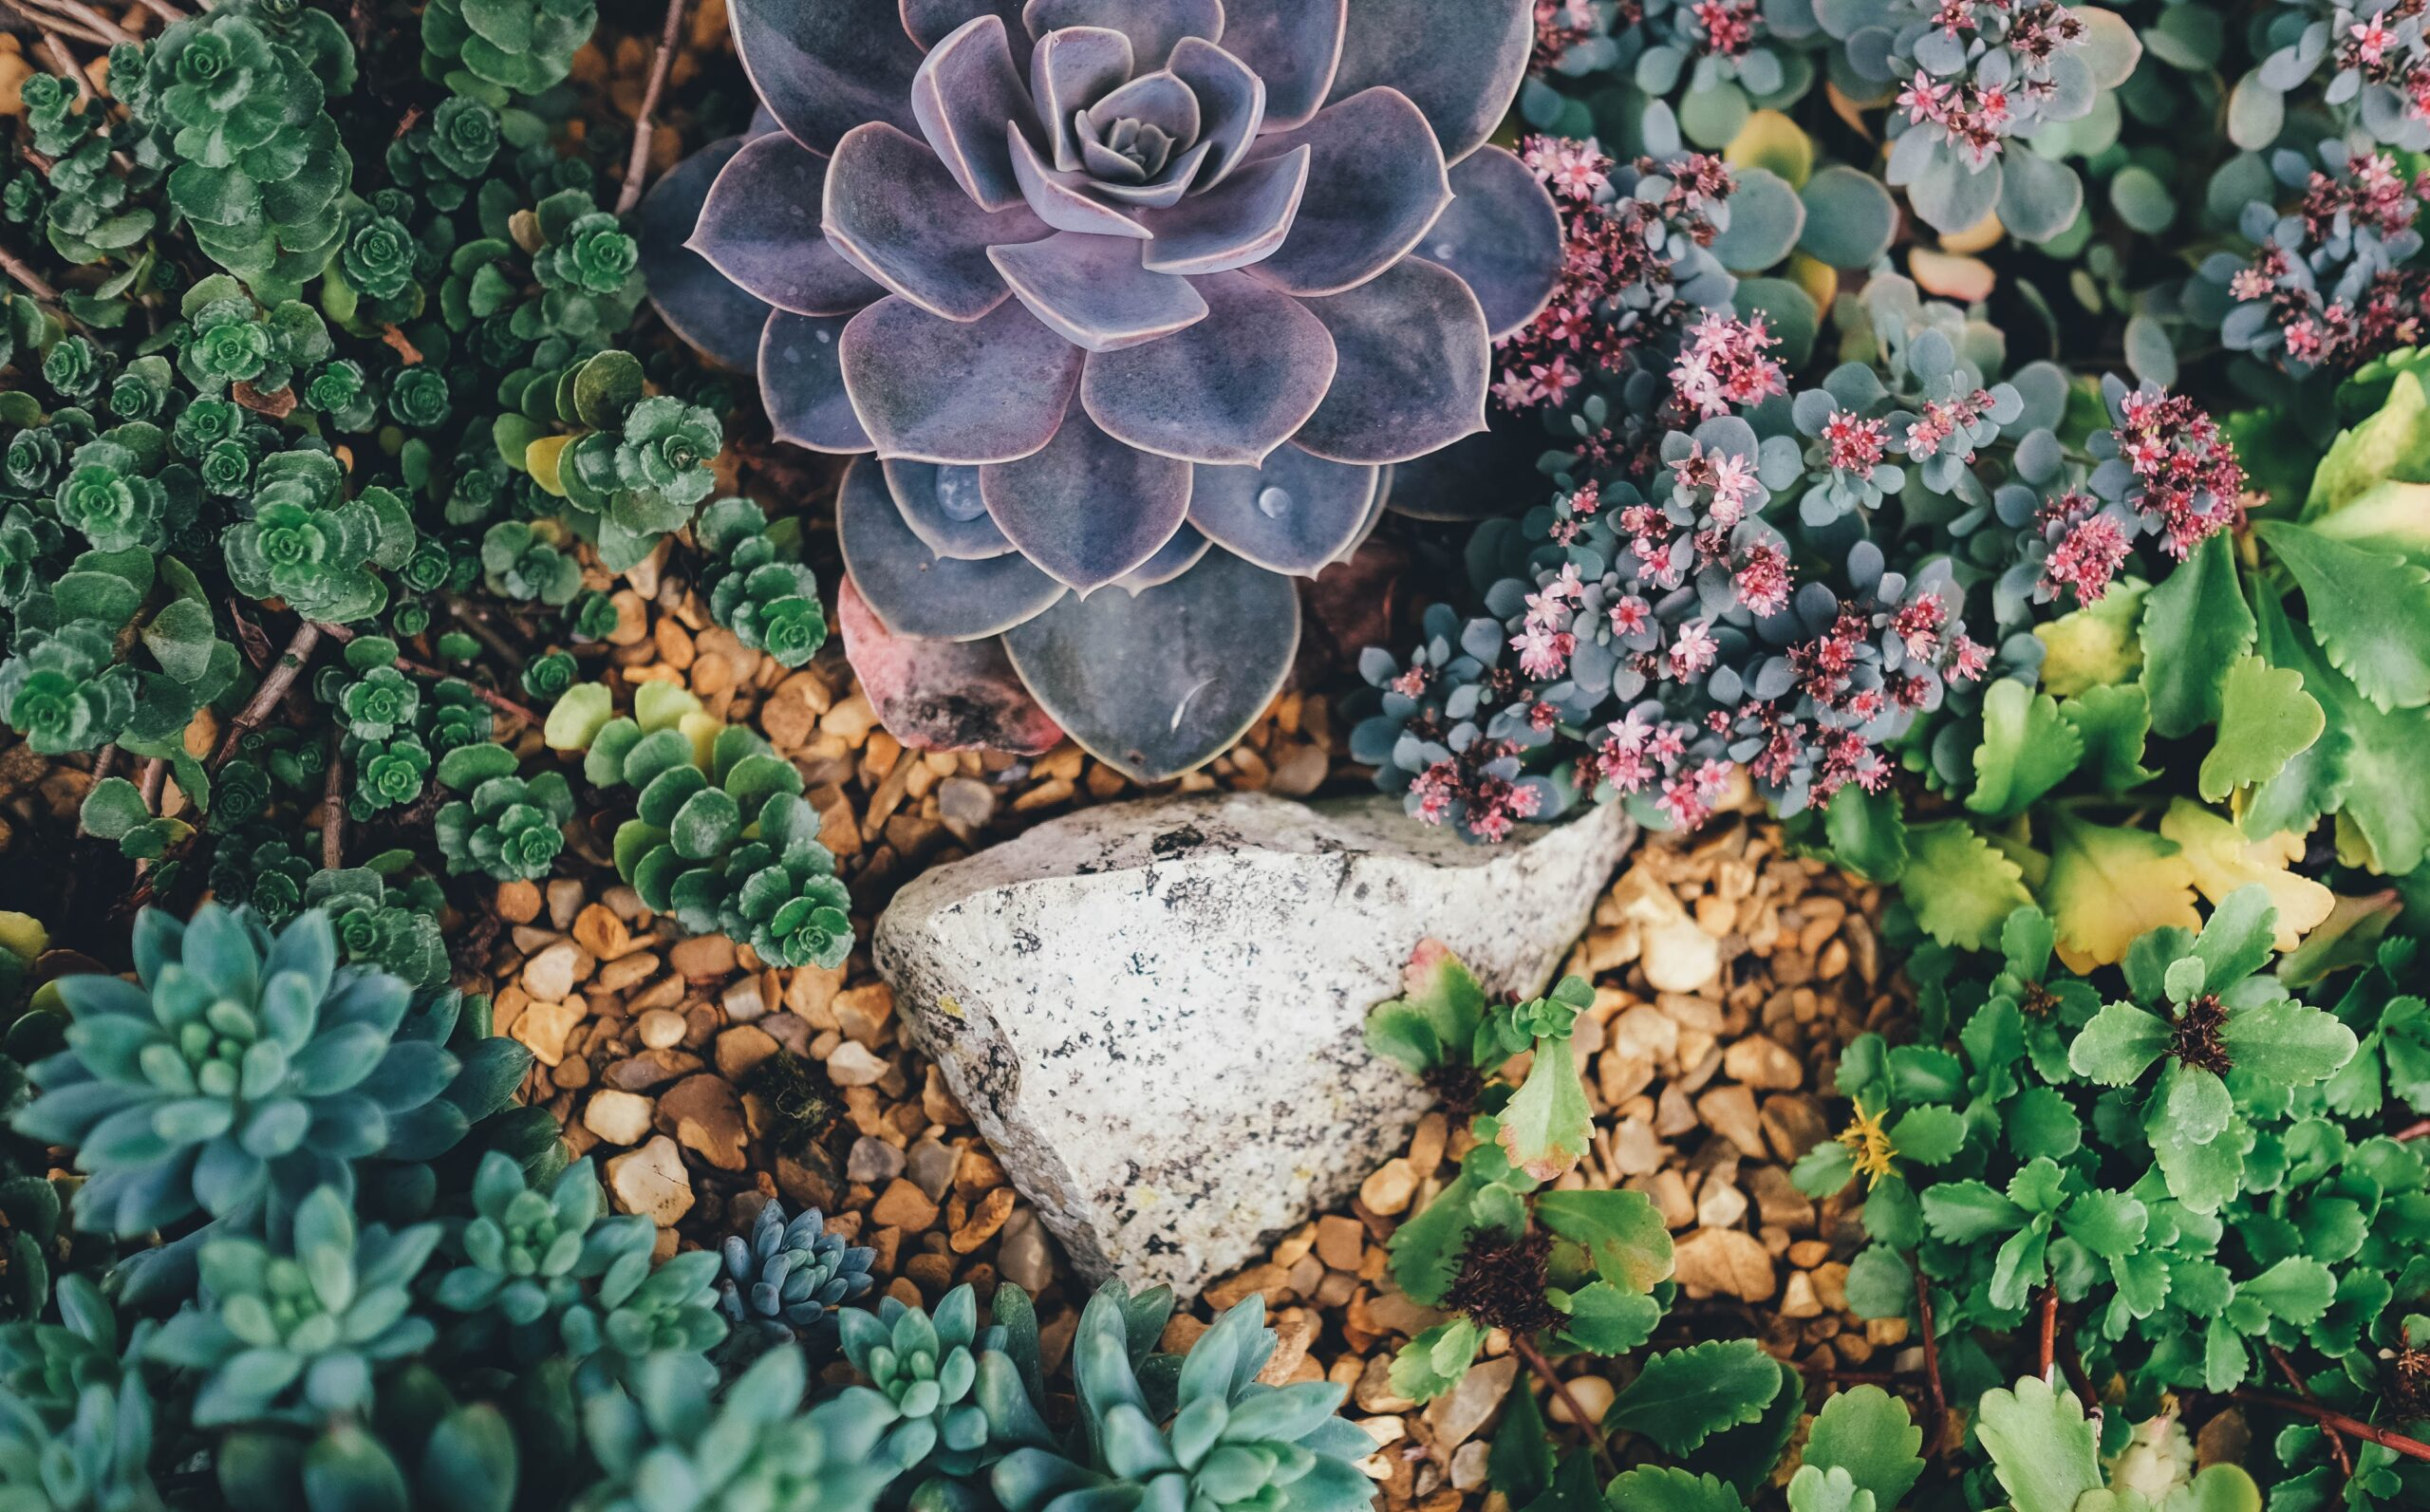 wallpaper Greystone surrounded by succulent plants